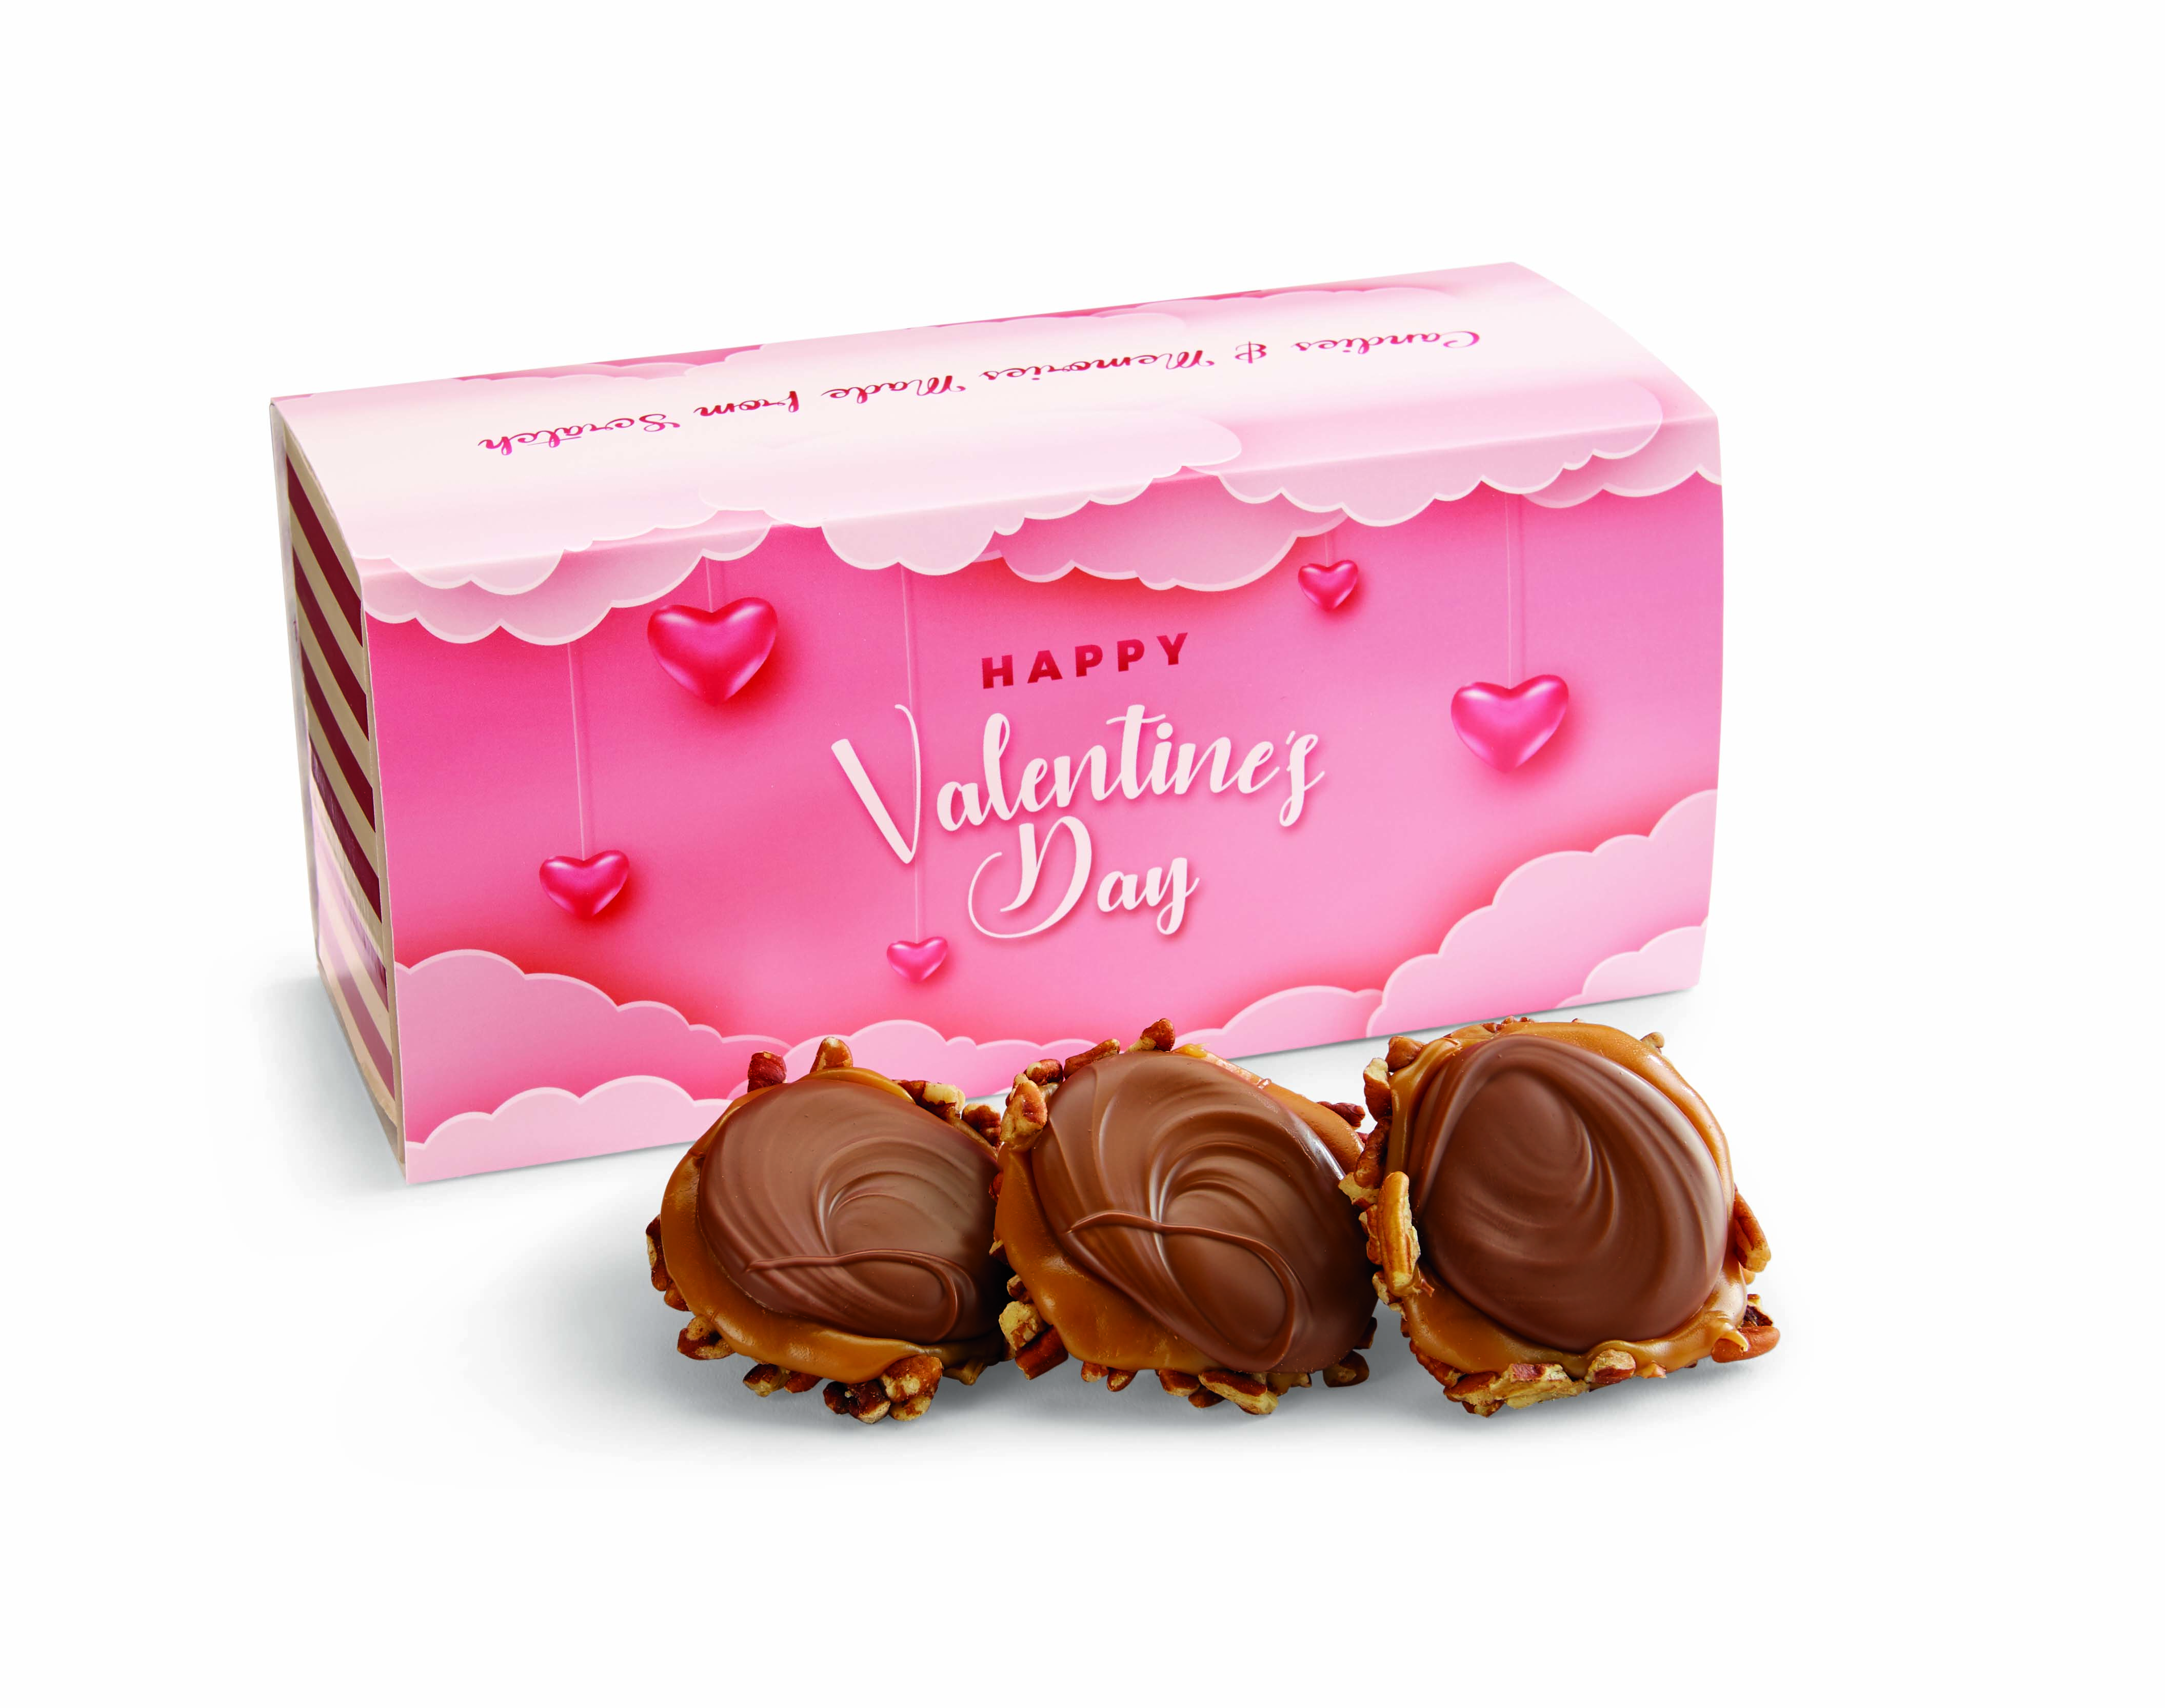 12 Piece Milk Chocolate Turtle Gophers in the Valentine's Gift Box